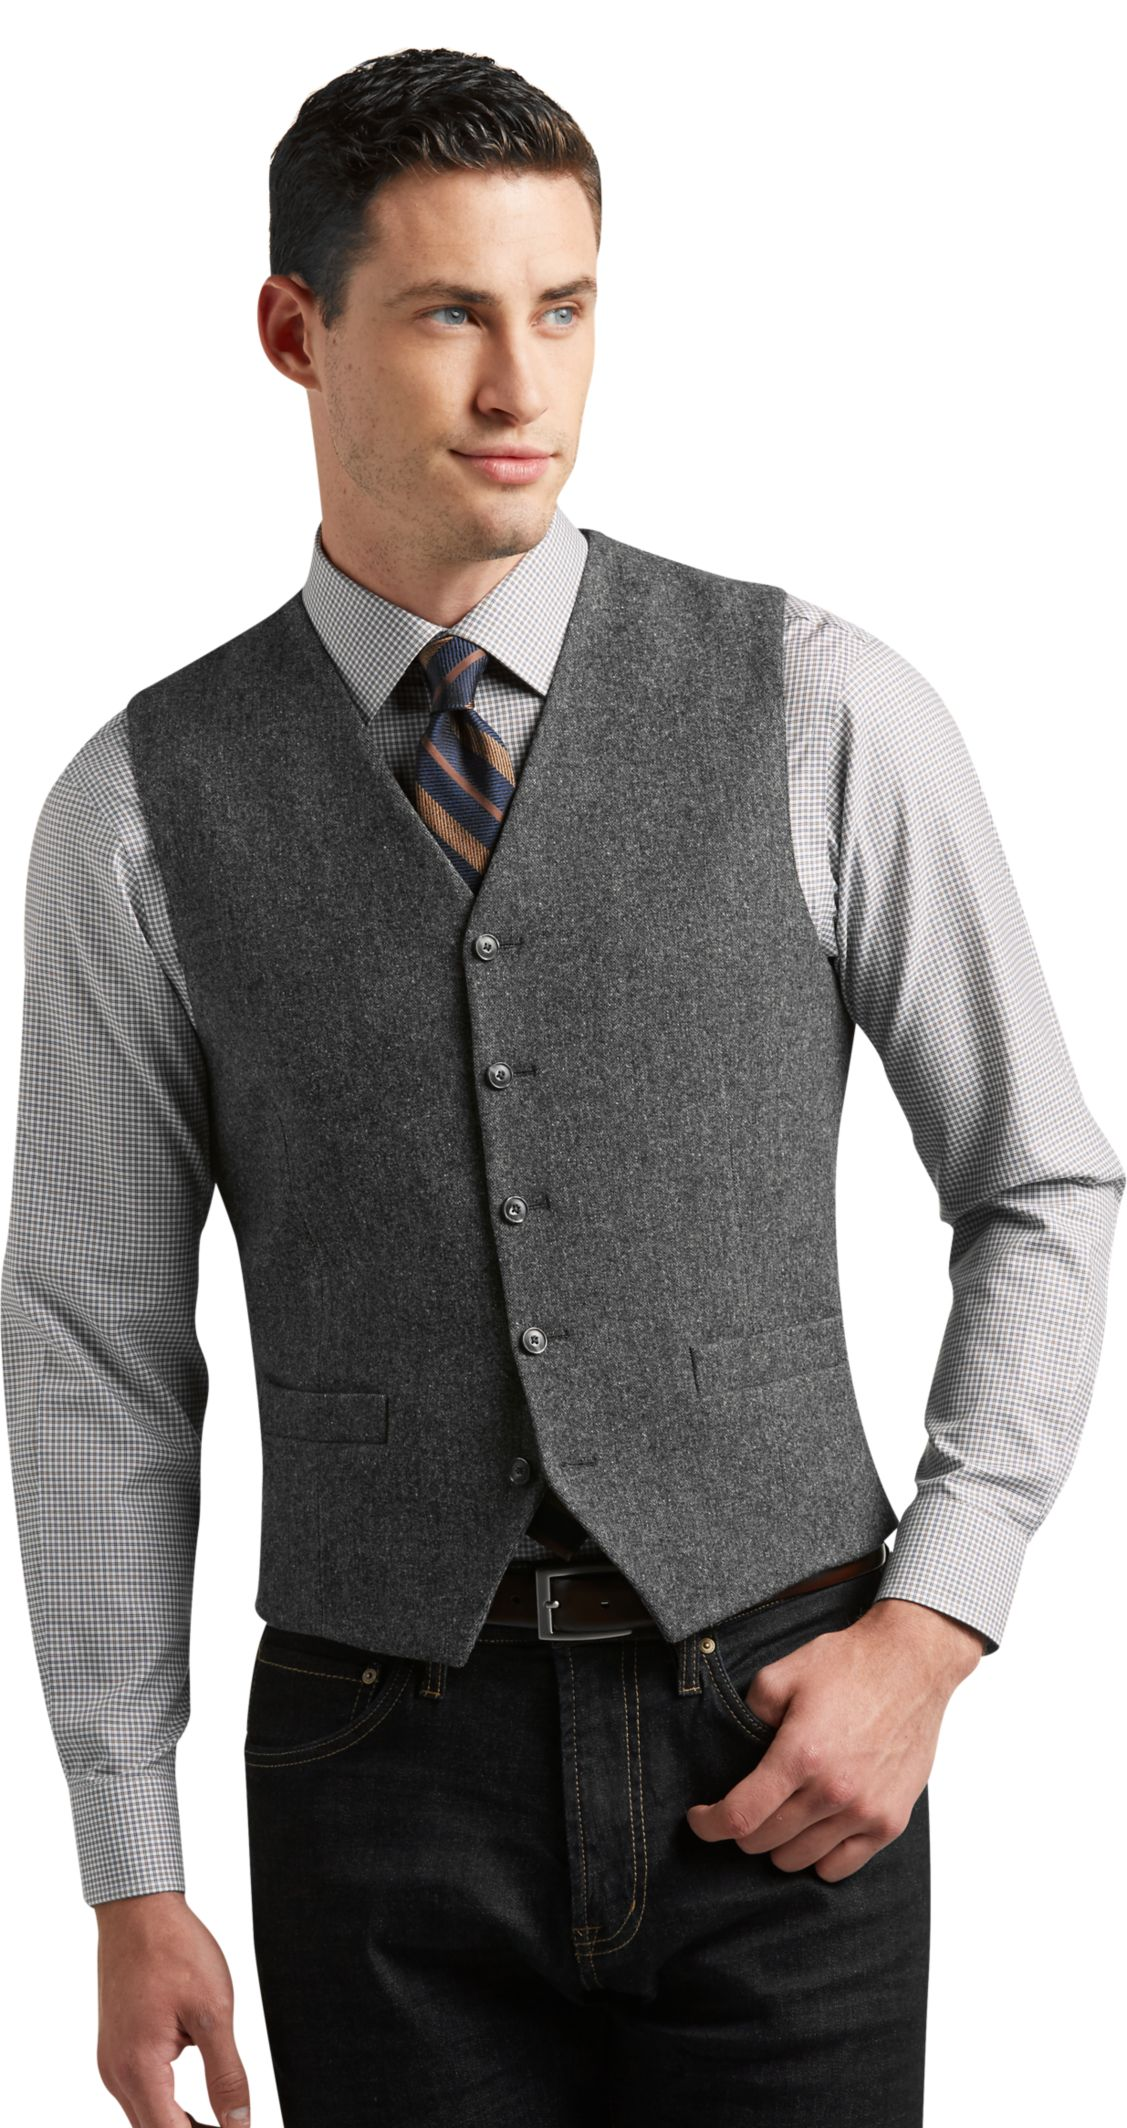 Men's Vests | Men's SportCoats | JoS. A. Bank Clothiers